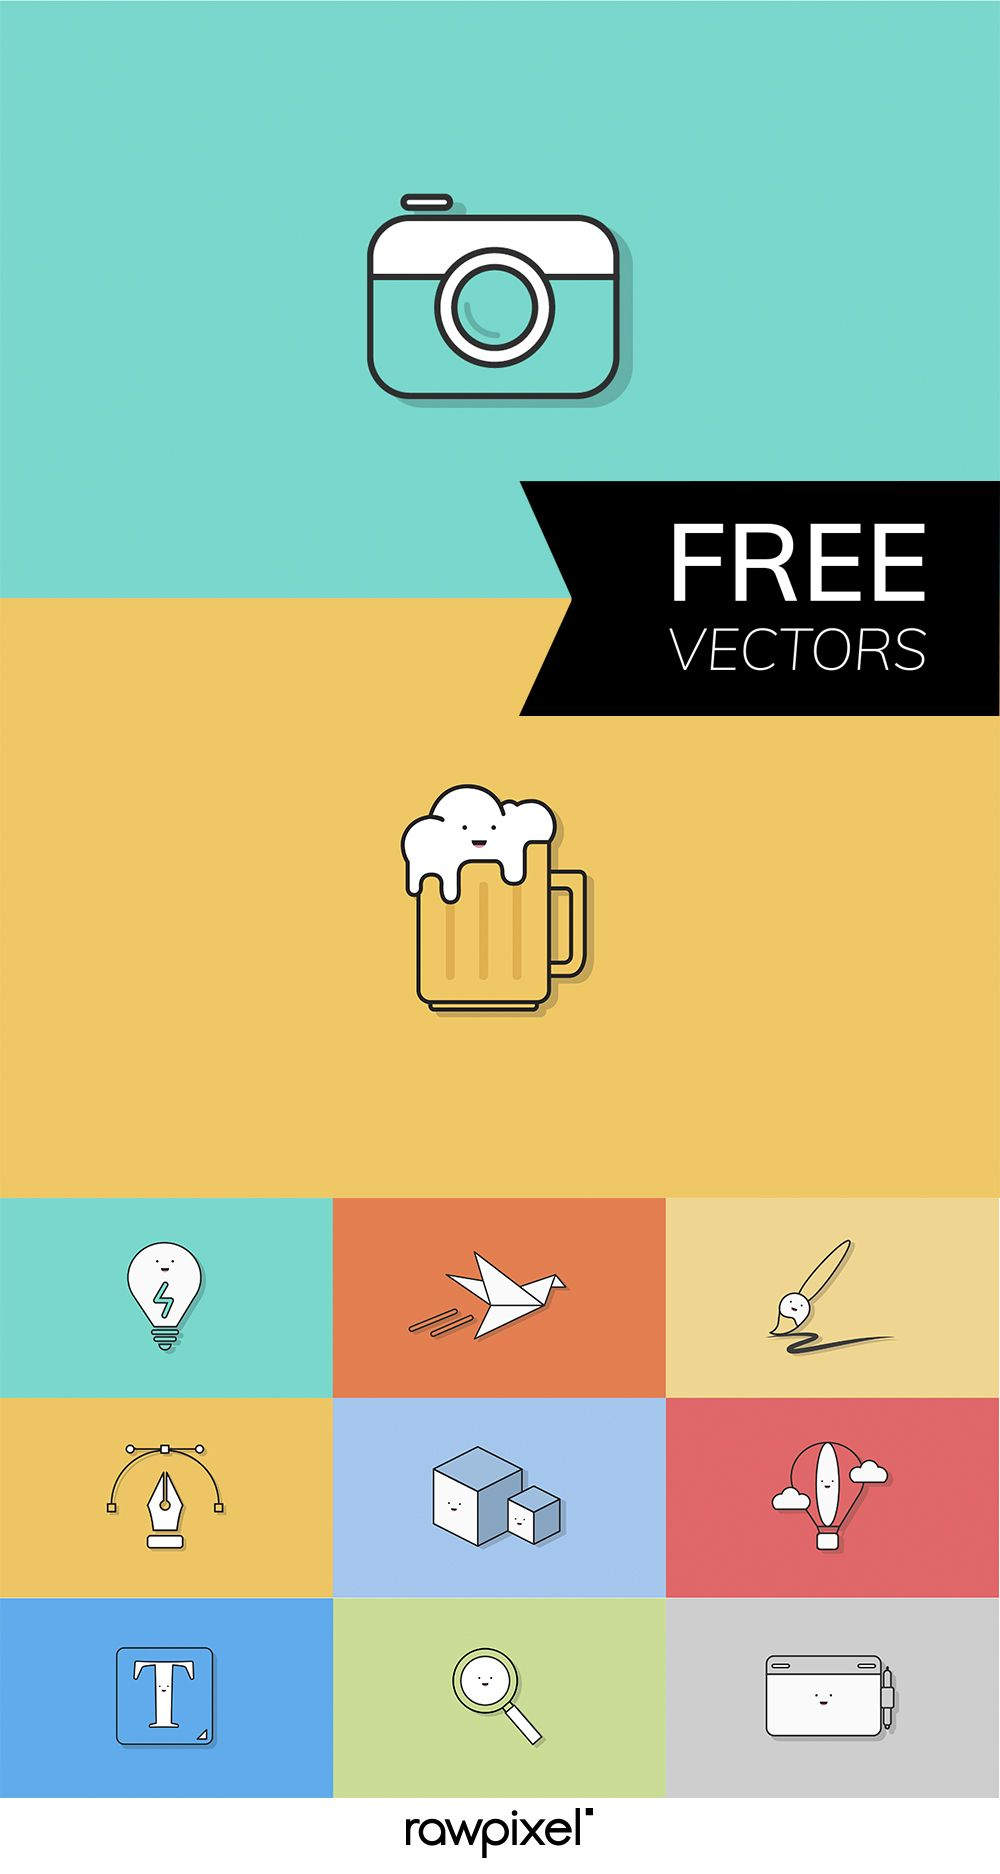 Download Free Vectors Of Cute Minimal Icons By Rawpixel S Artist